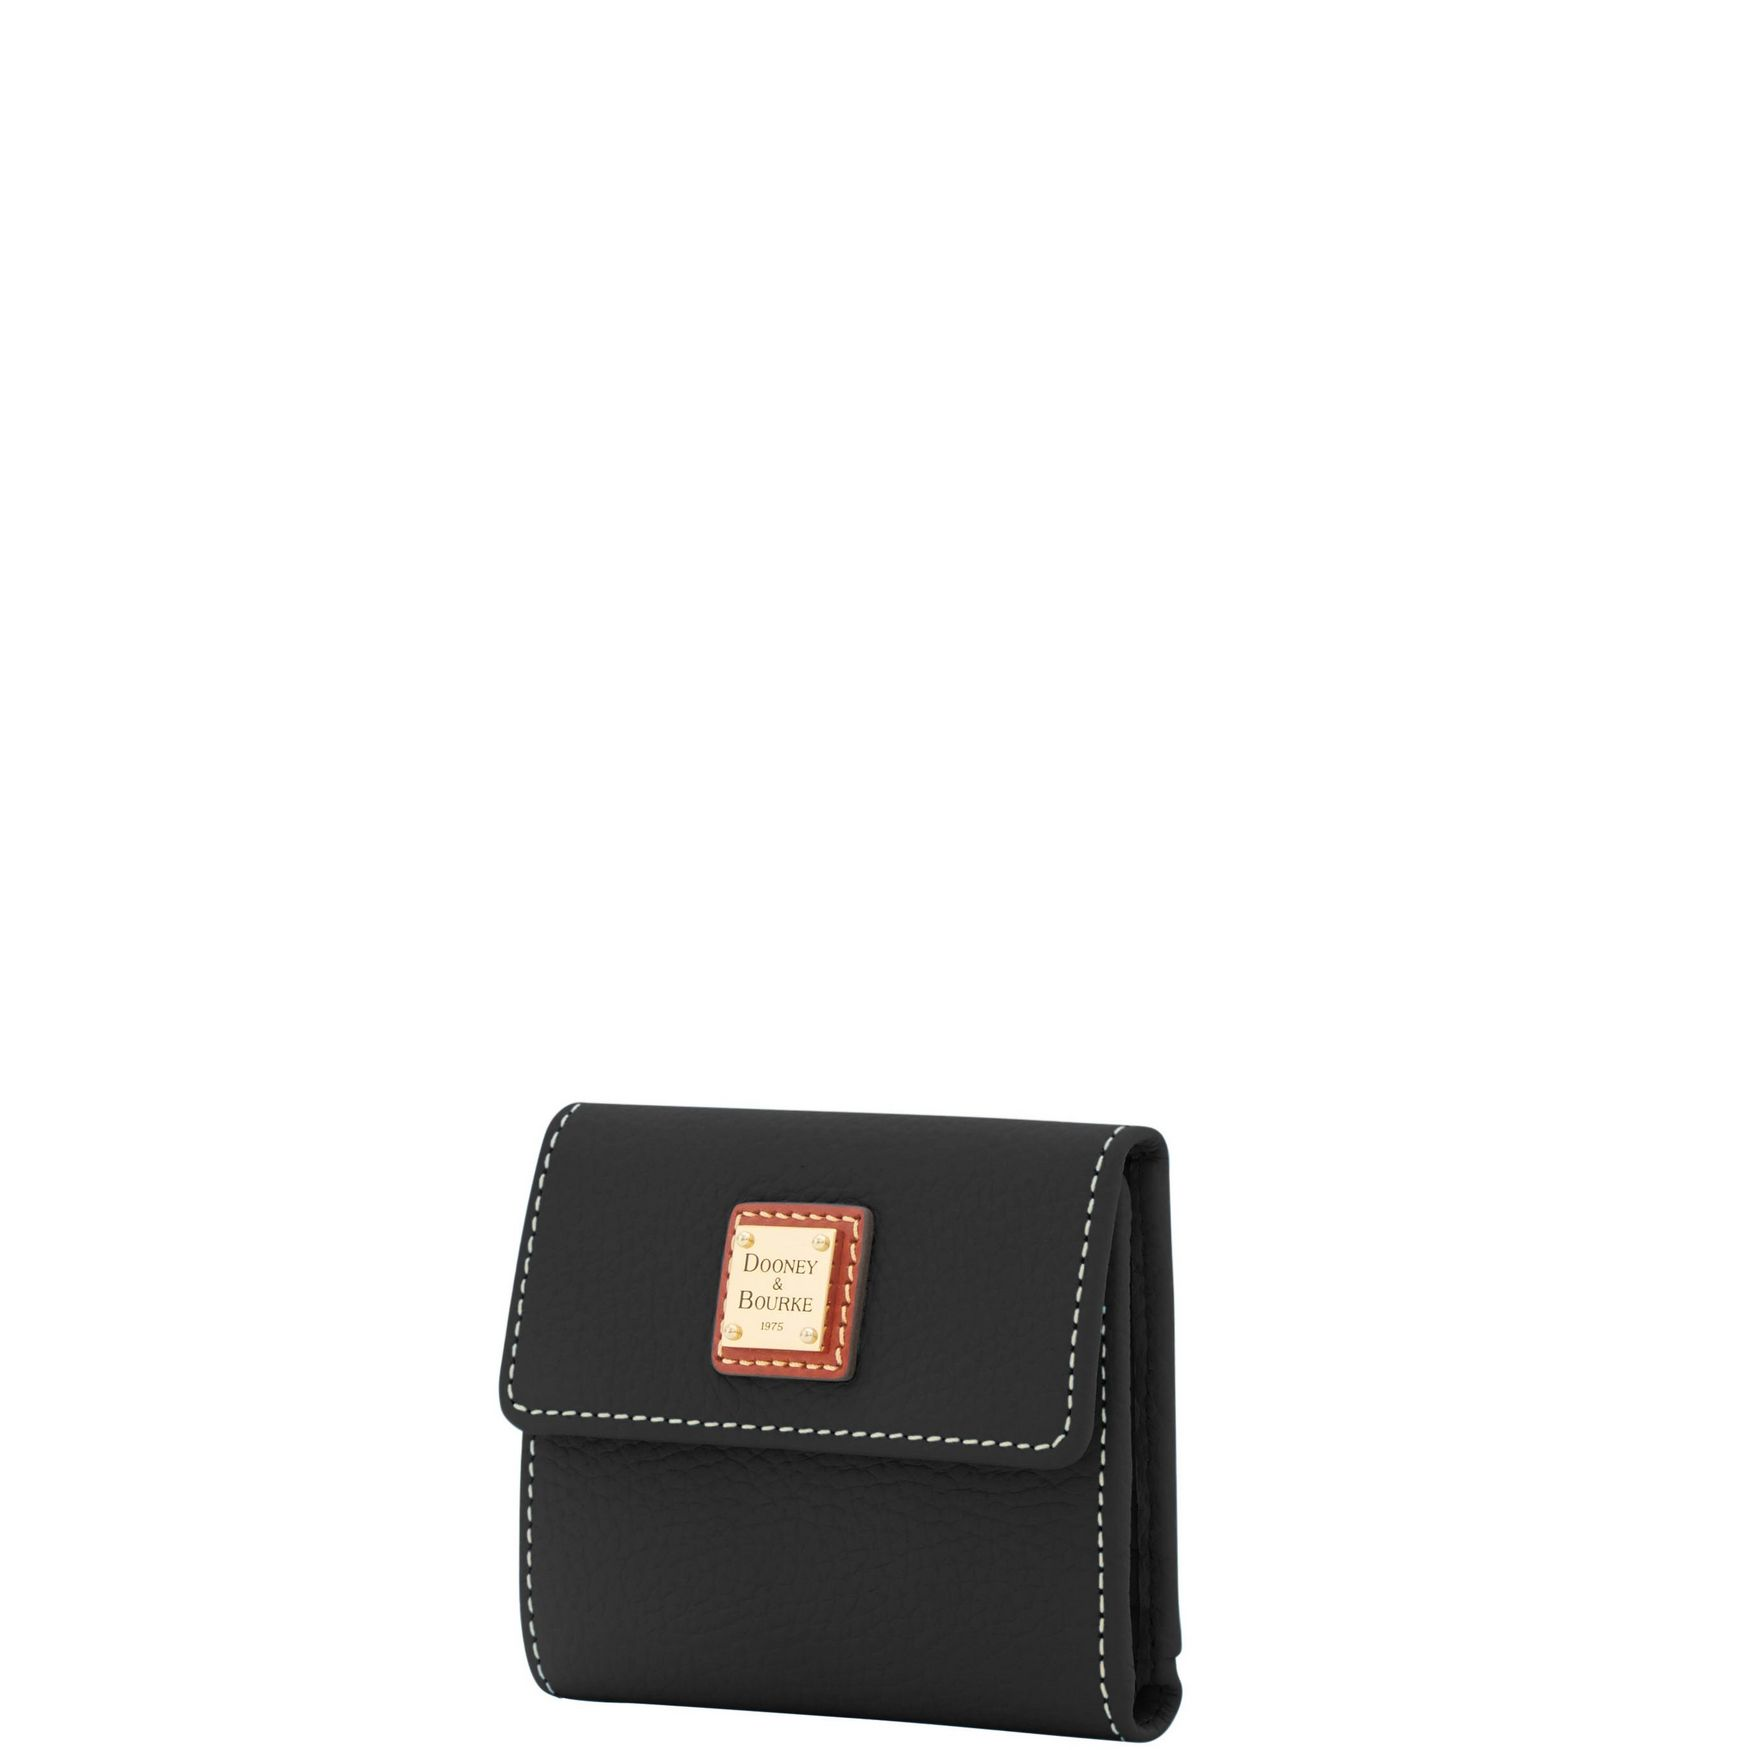 Dooney-amp-Bourke-Pebble-Grain-Small-Flap-Wallet thumbnail 4